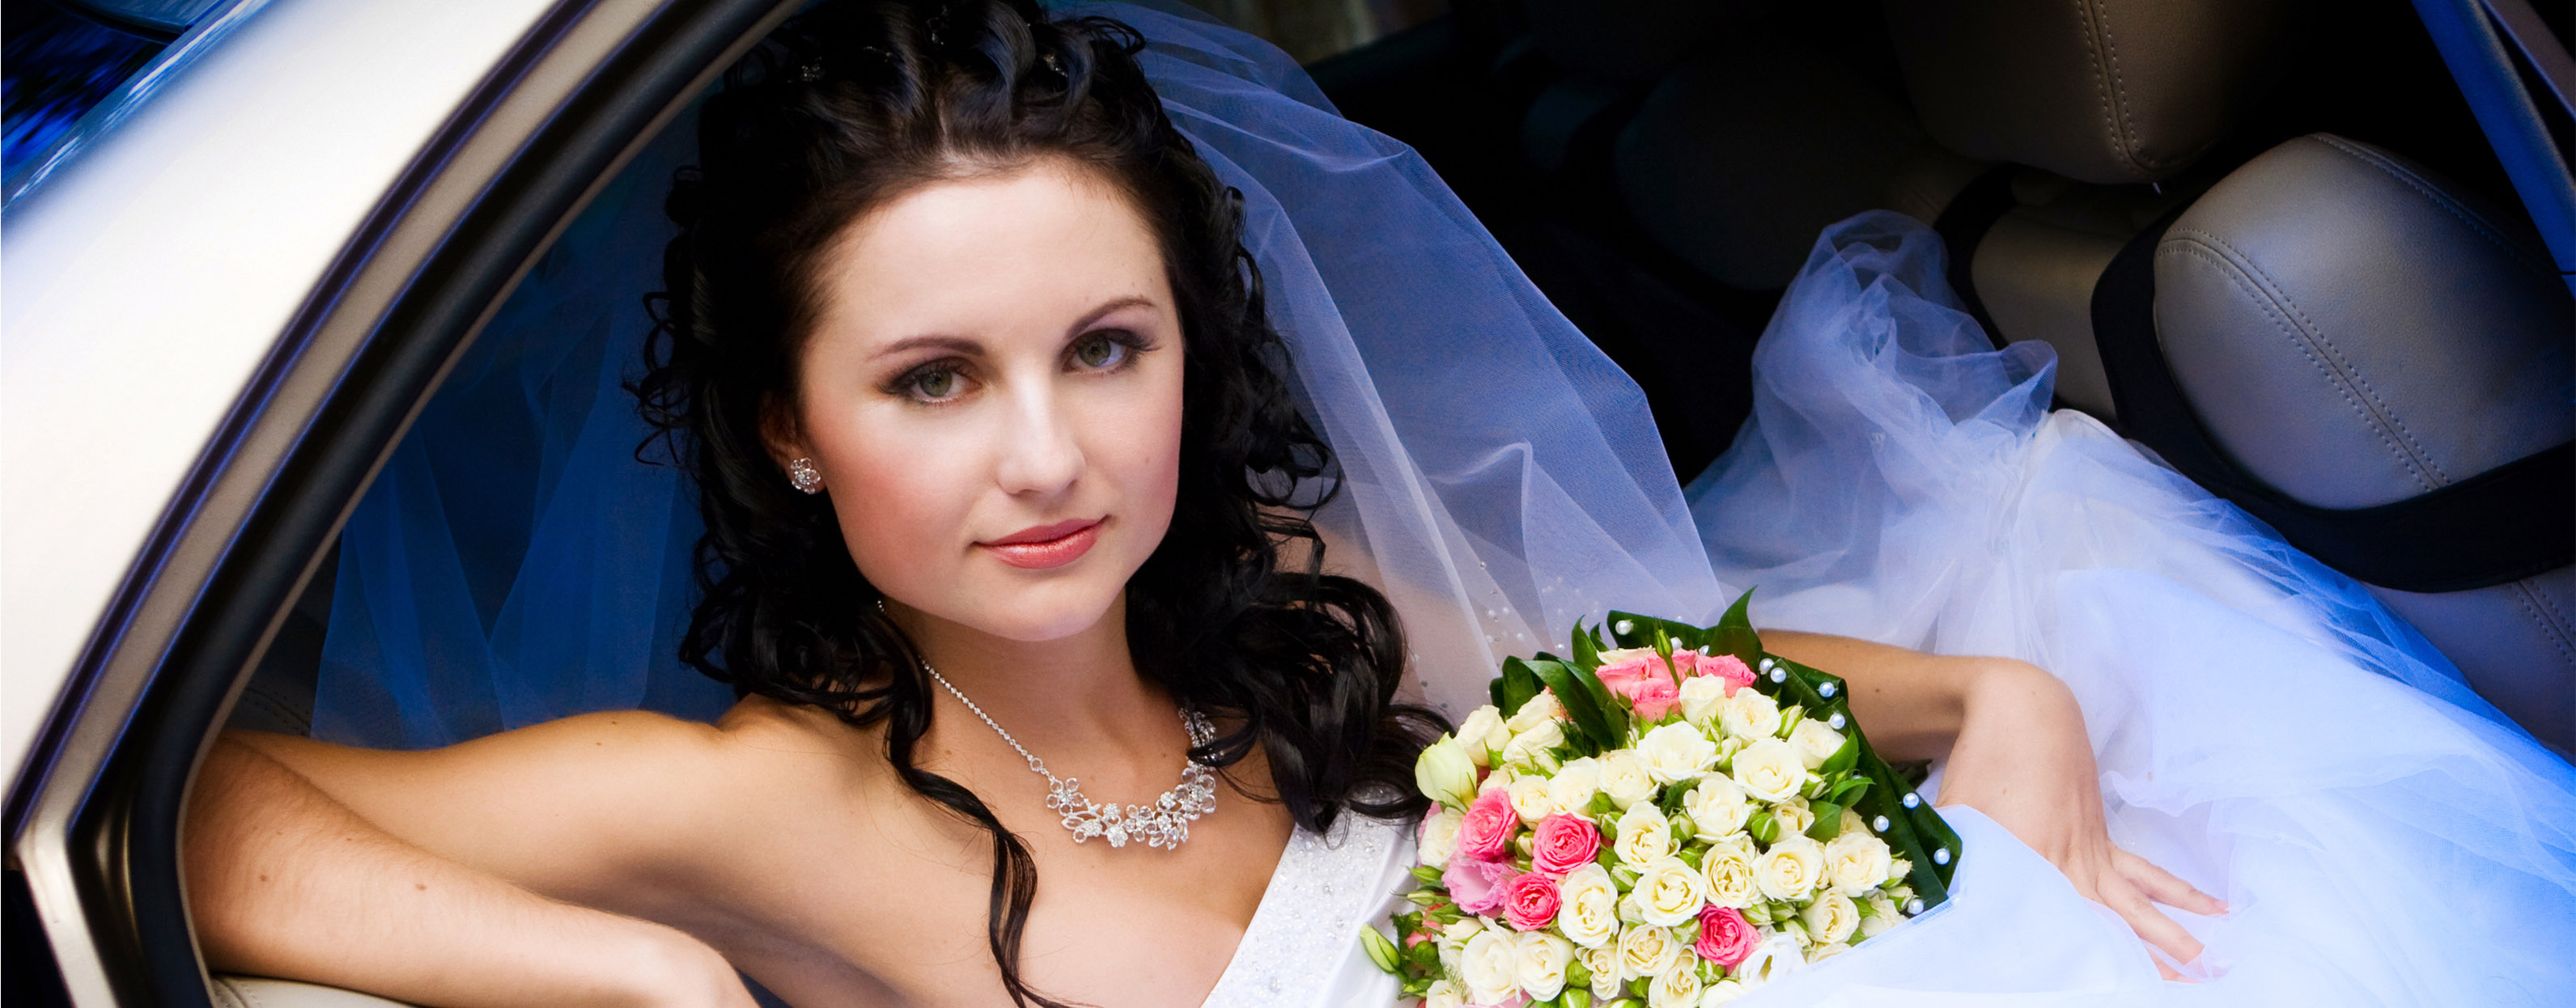 wedding makeup services silk amp spa portland oregon bridal makeup amp hair 9831